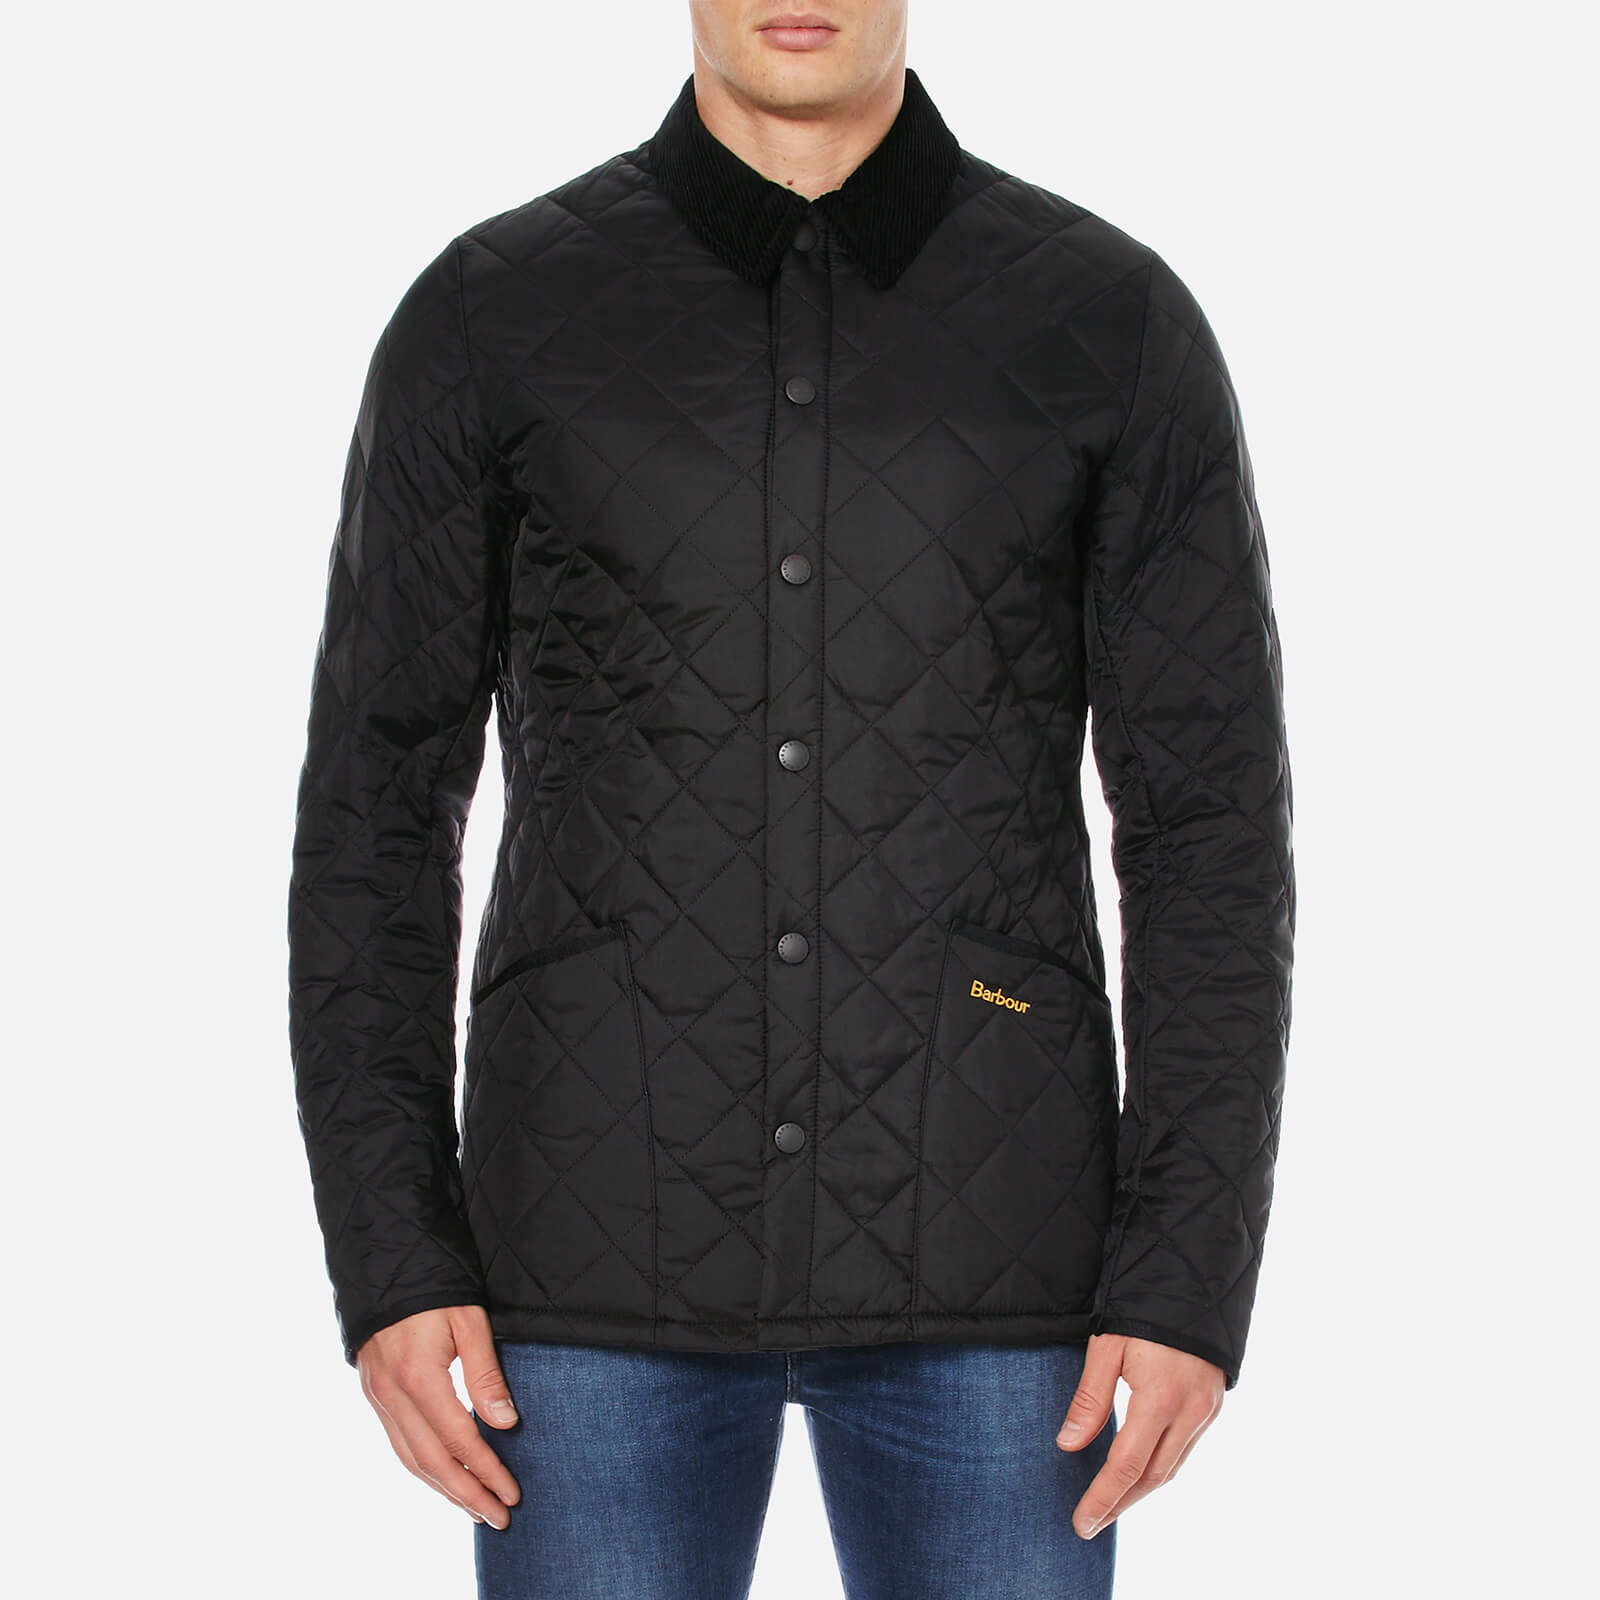 adcc4e619130 Barbour Men s Heritage Liddesdale Quilt Jacket - Black - Free UK Delivery  over £50